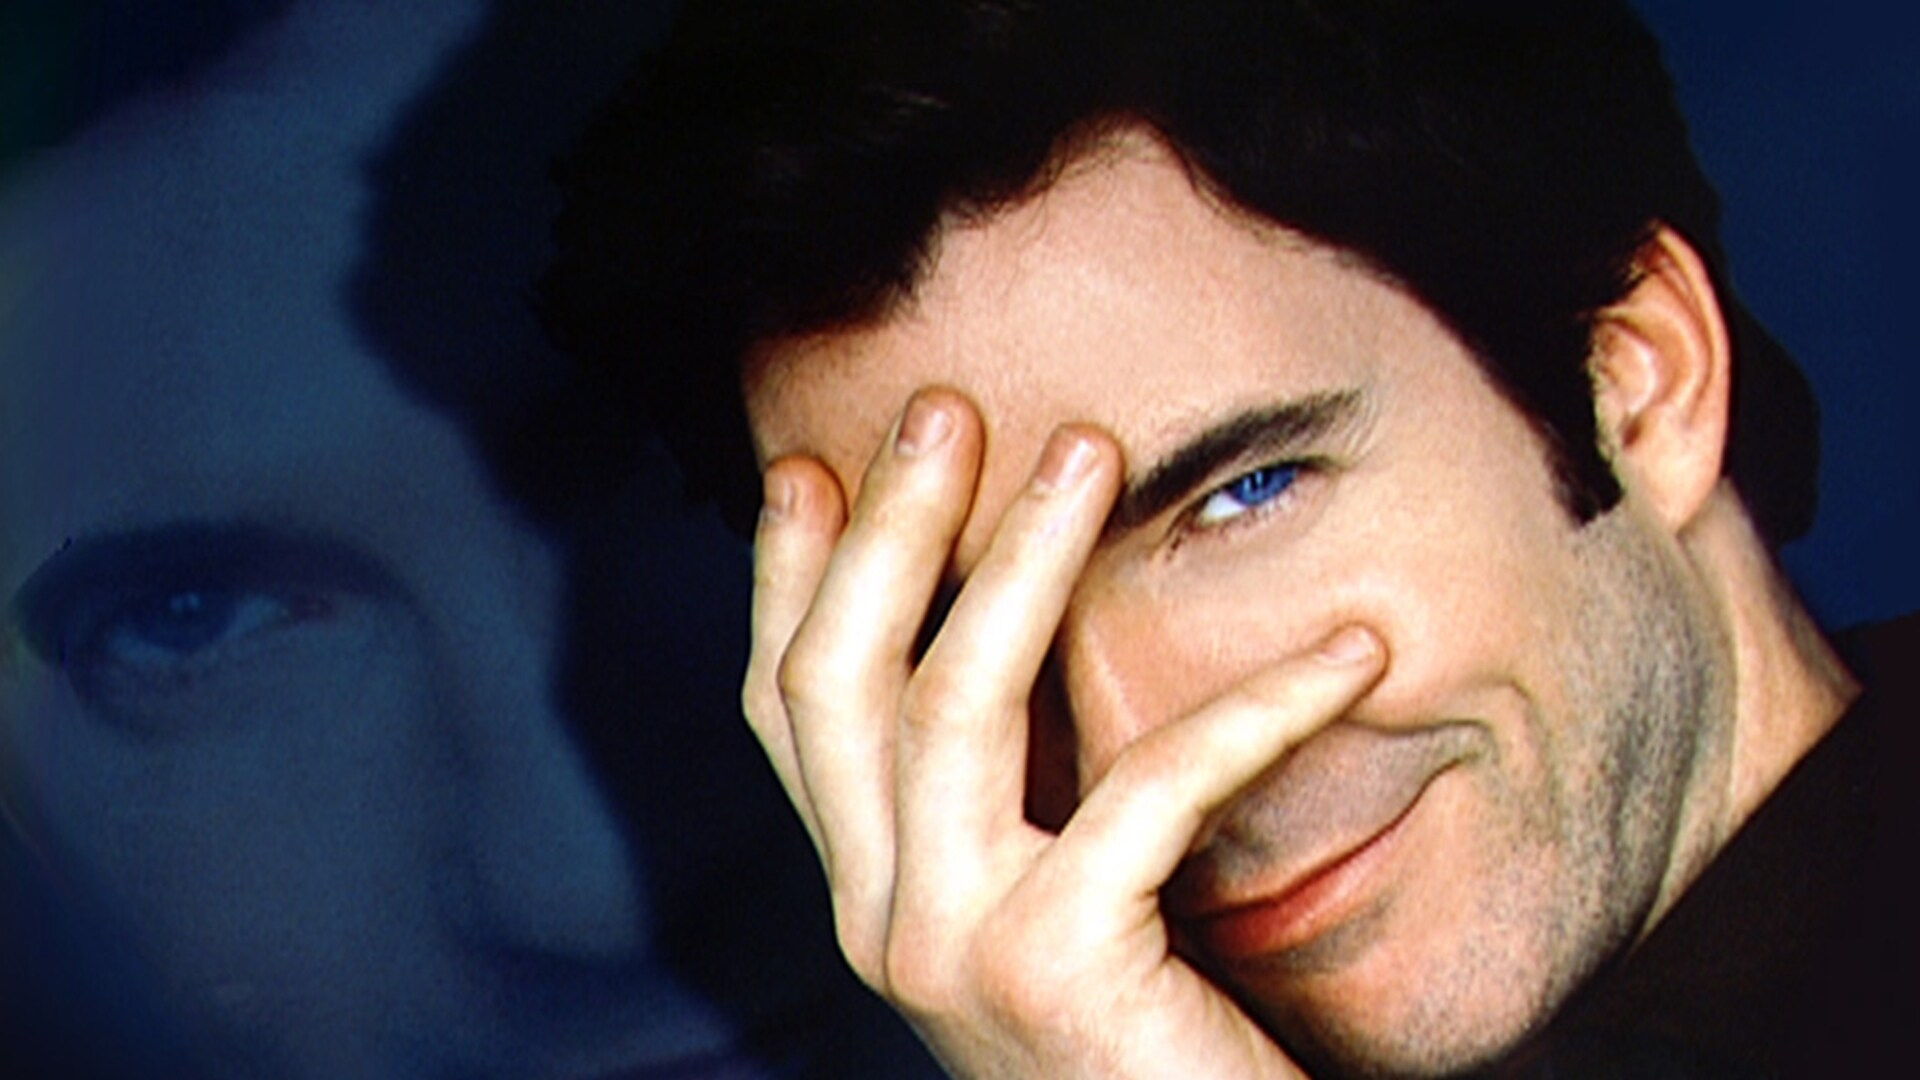 Dylan McDermott: November 6, 1999